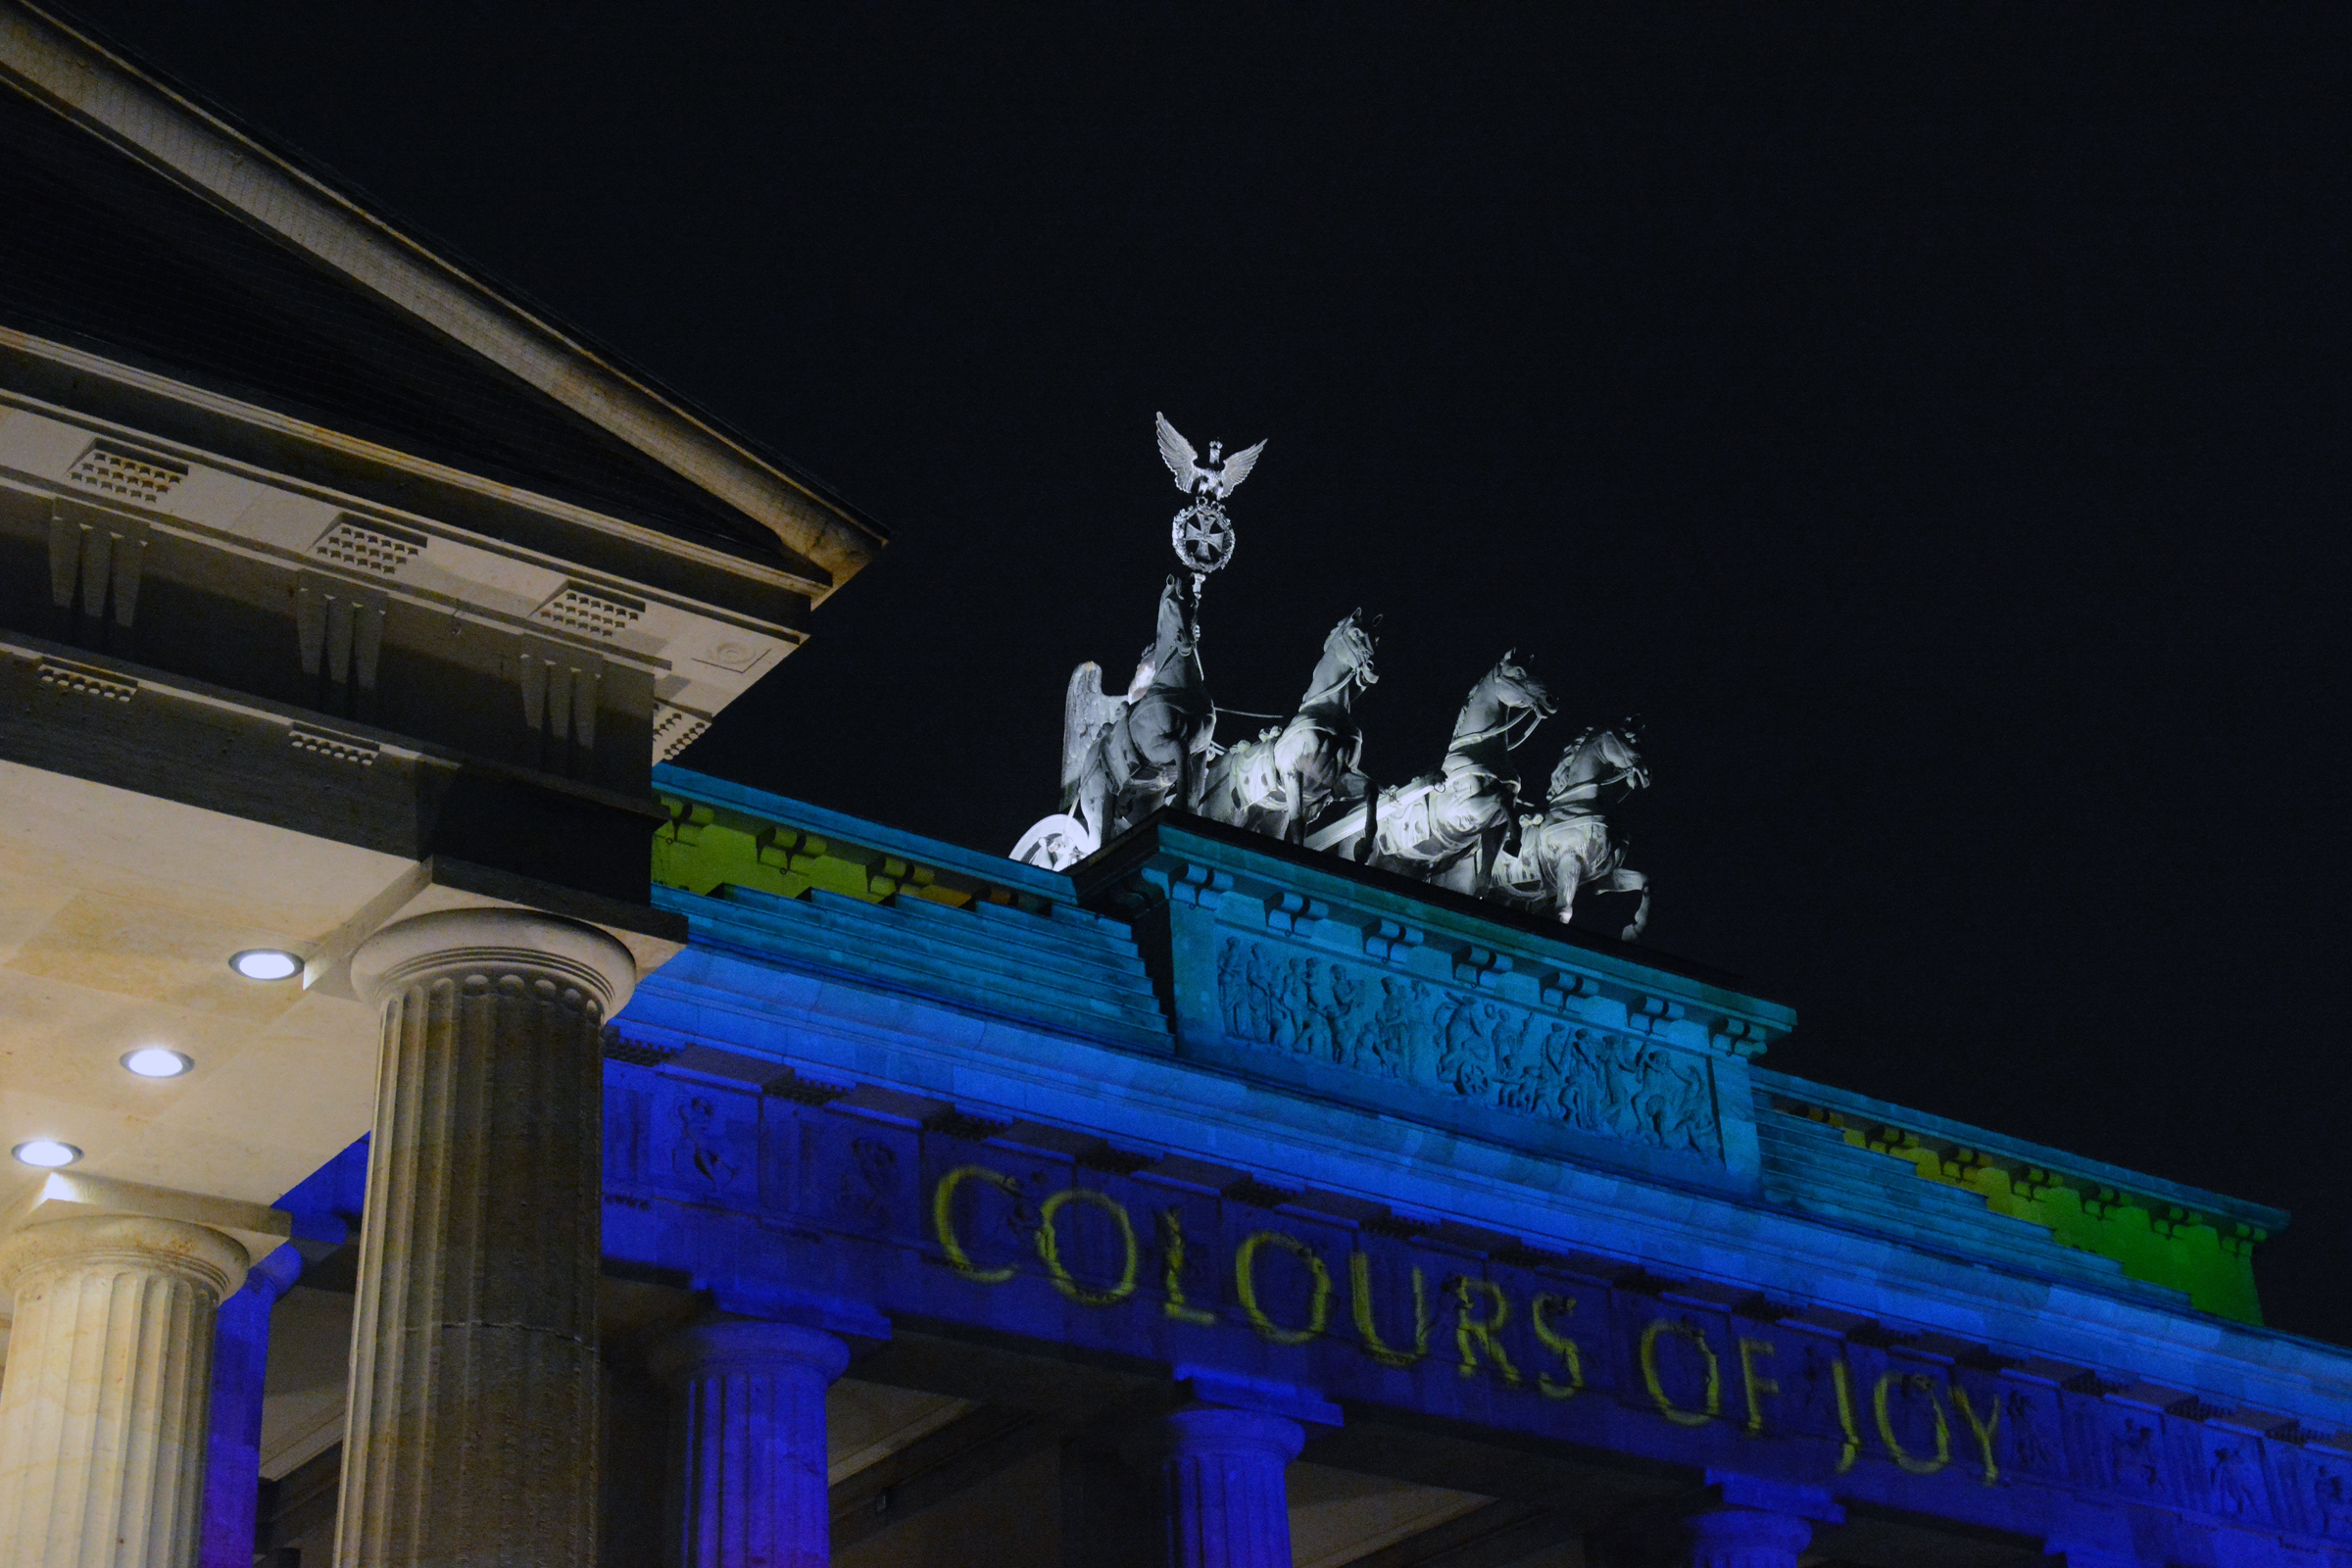 Festival of Lights 2014: Brandenburger Tor. Foto: Ulrich Horb